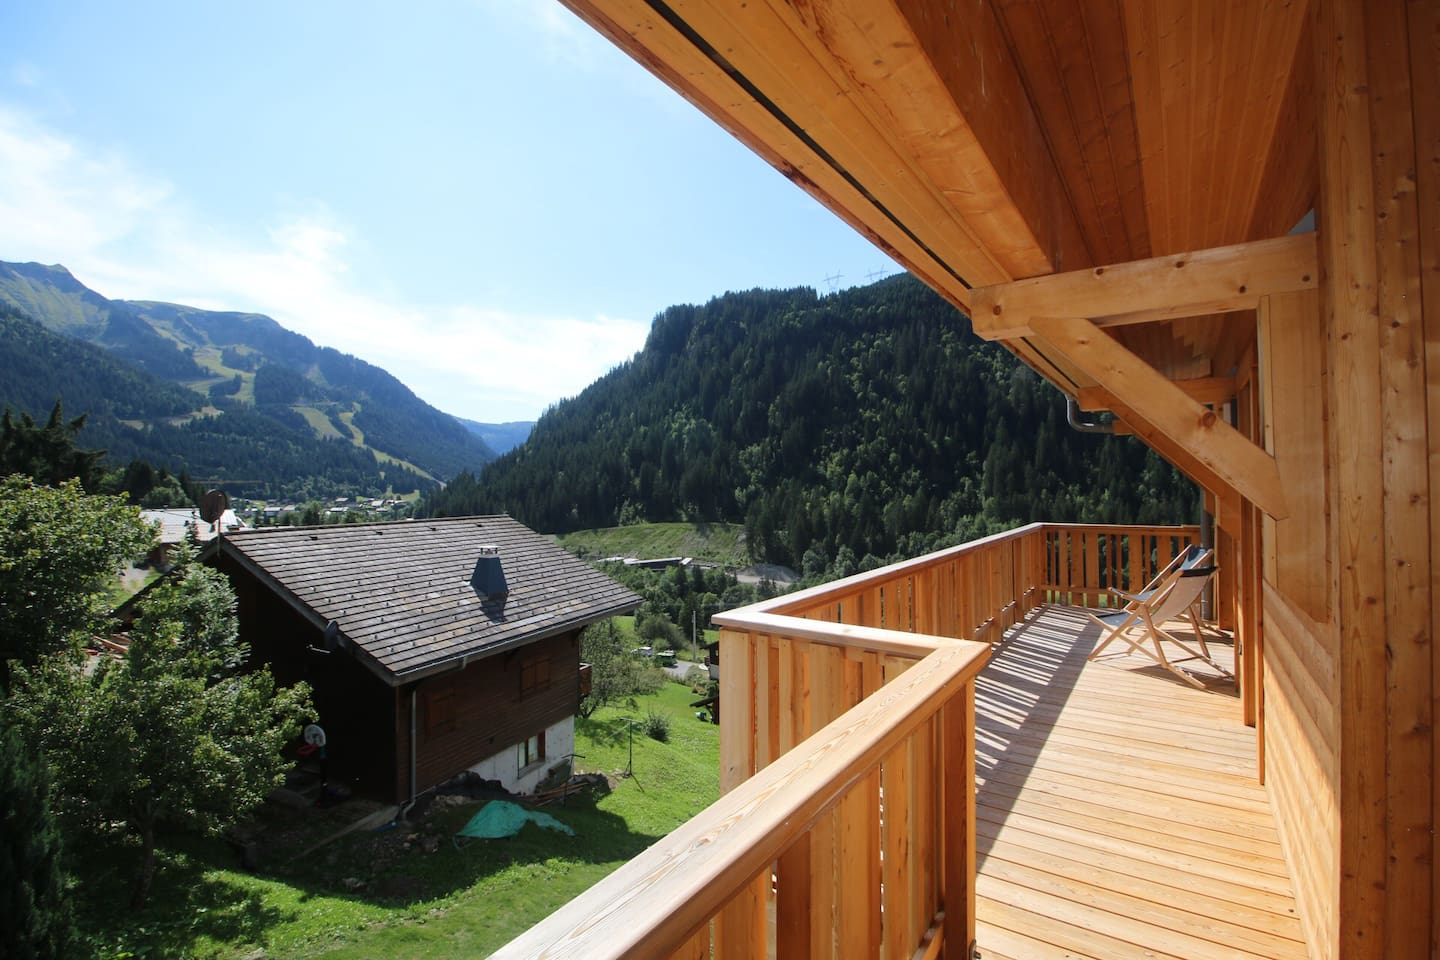 Balcony with a view, facing South